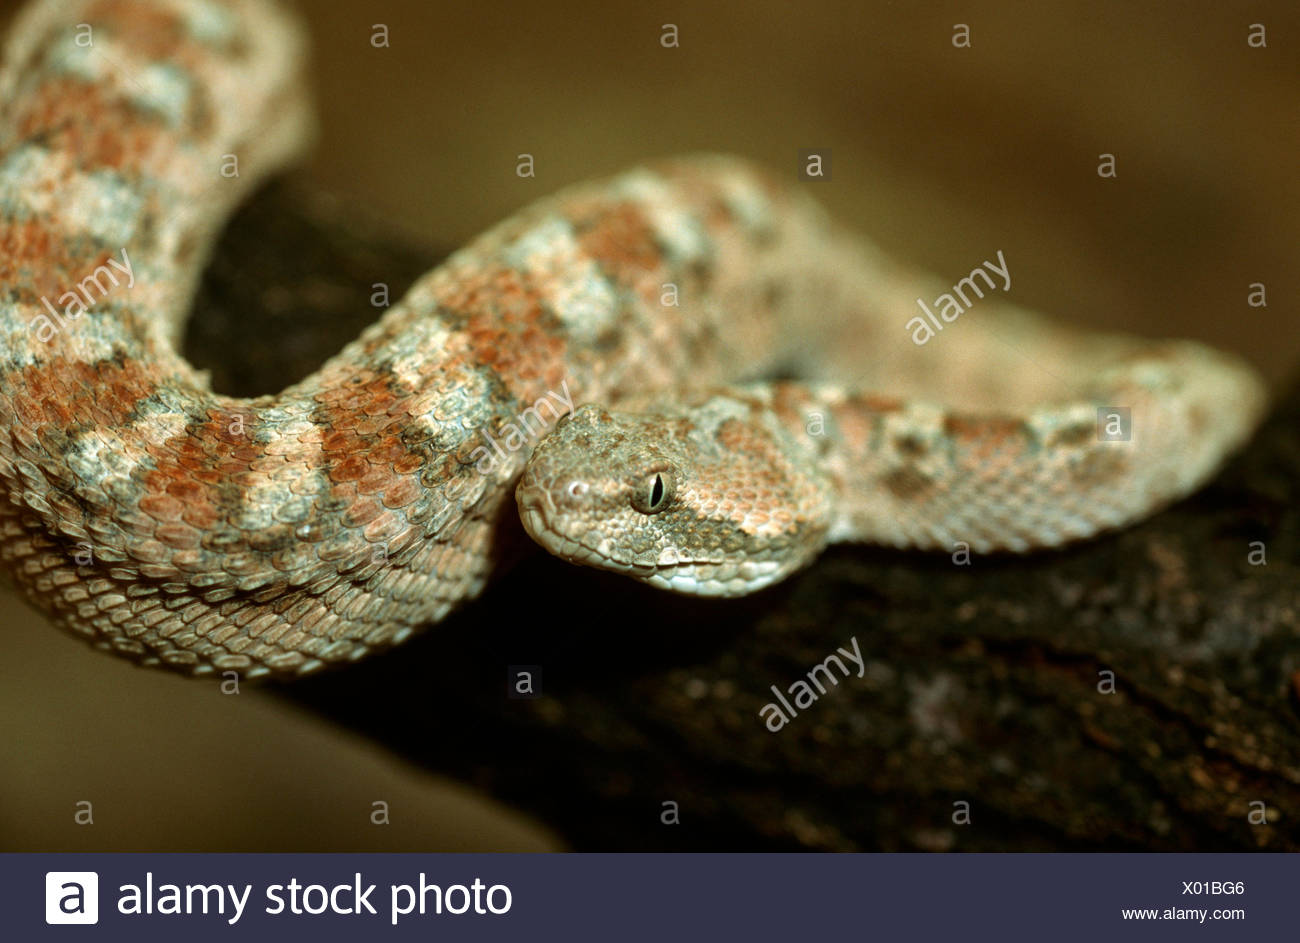 Arabic saw-scaled viper, Palestine saw-scaled viper (Echis coloratus), closeup on a branch, one of the most dangerous venomous snakes - Stock Image